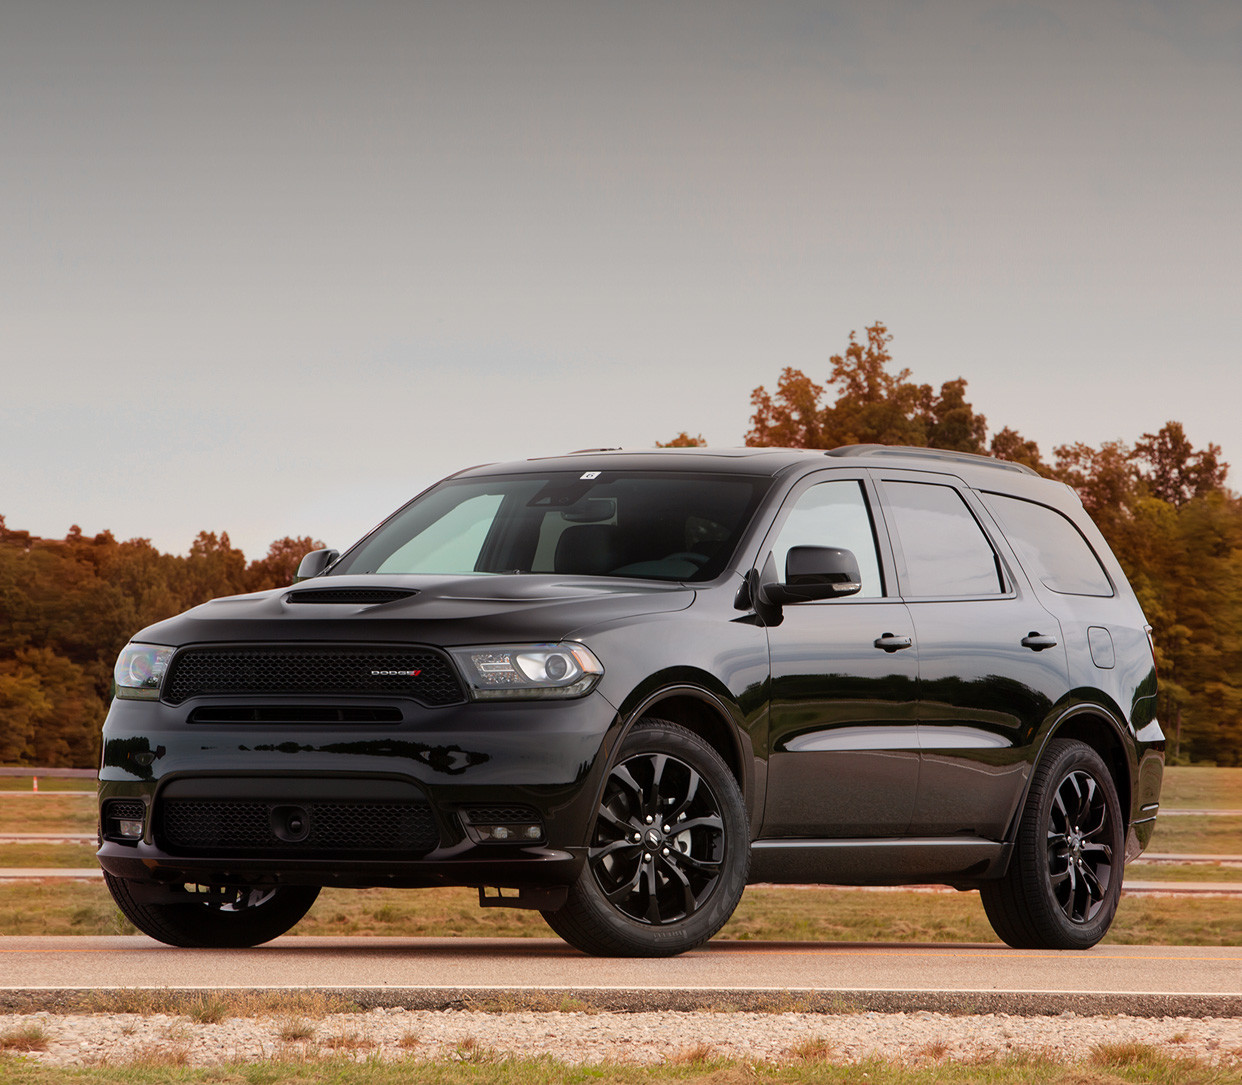 Black Dodge Durango Parked by the Plains